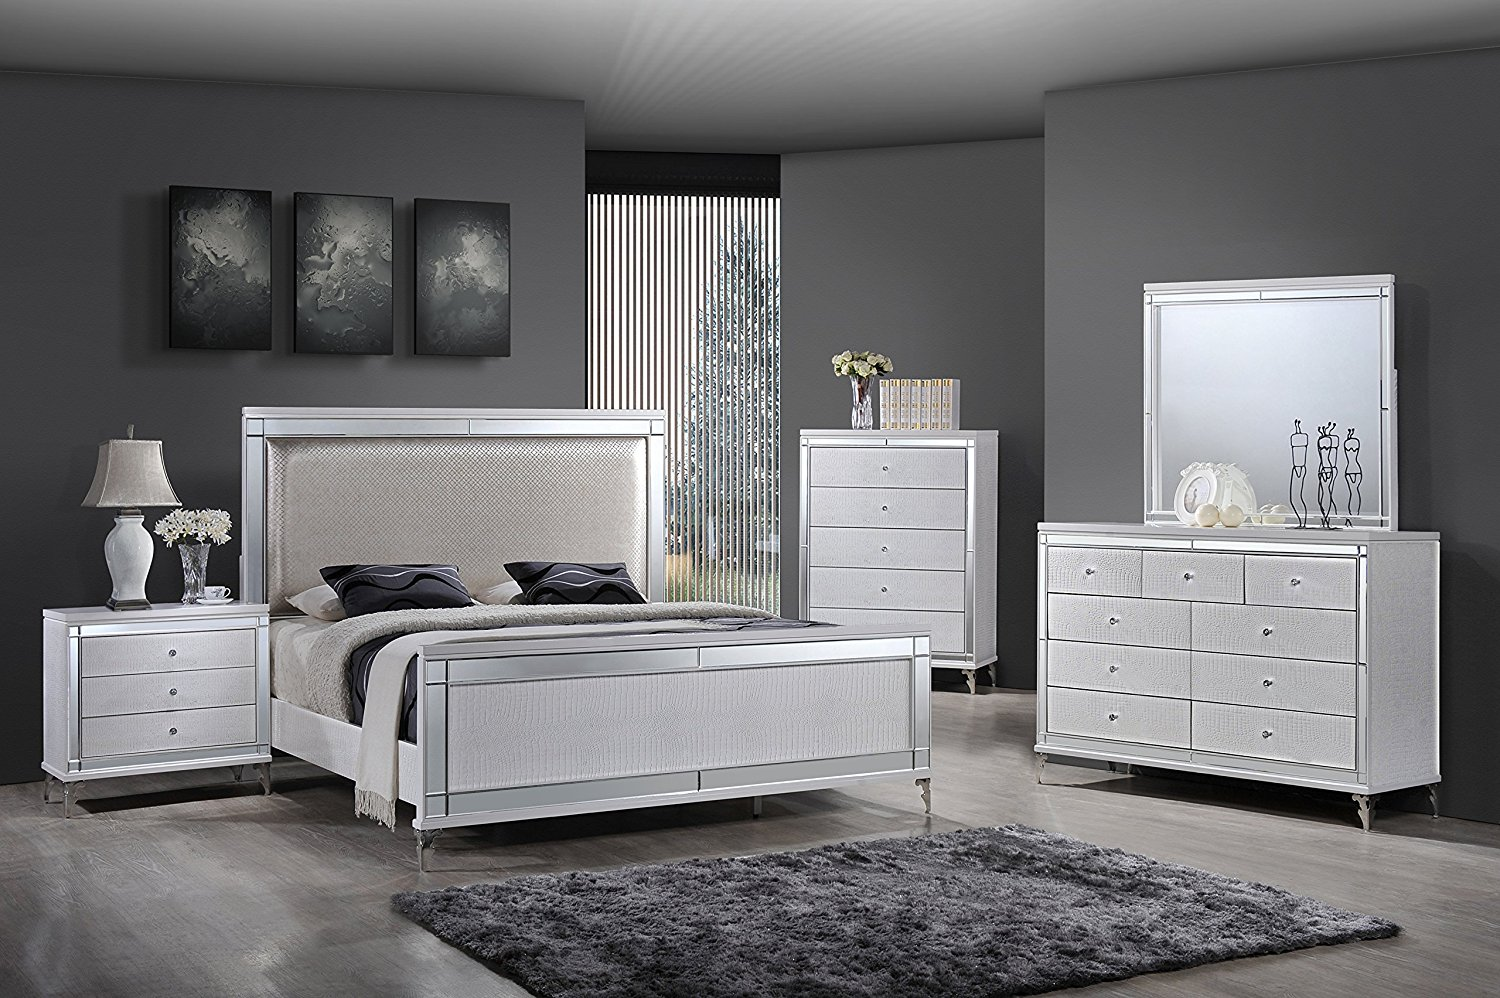 Mirrored bedroom furniture sets choice cool ideas for home - Contemporary king bedroom furniture ...